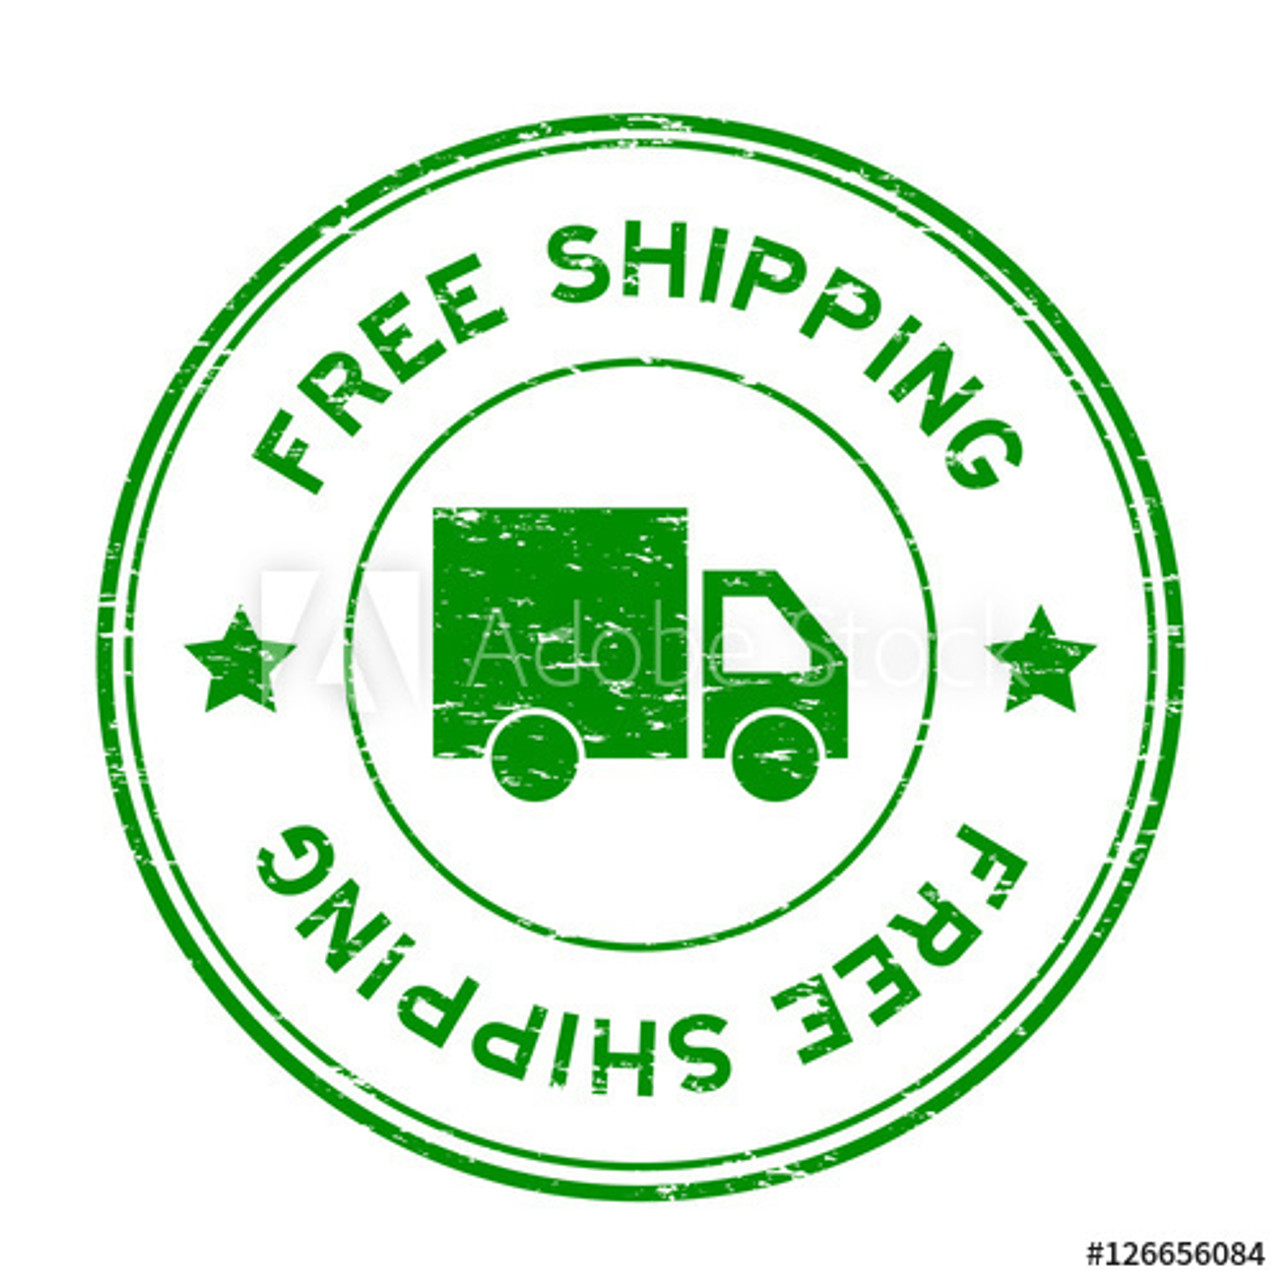 Free Shipping Small Orders